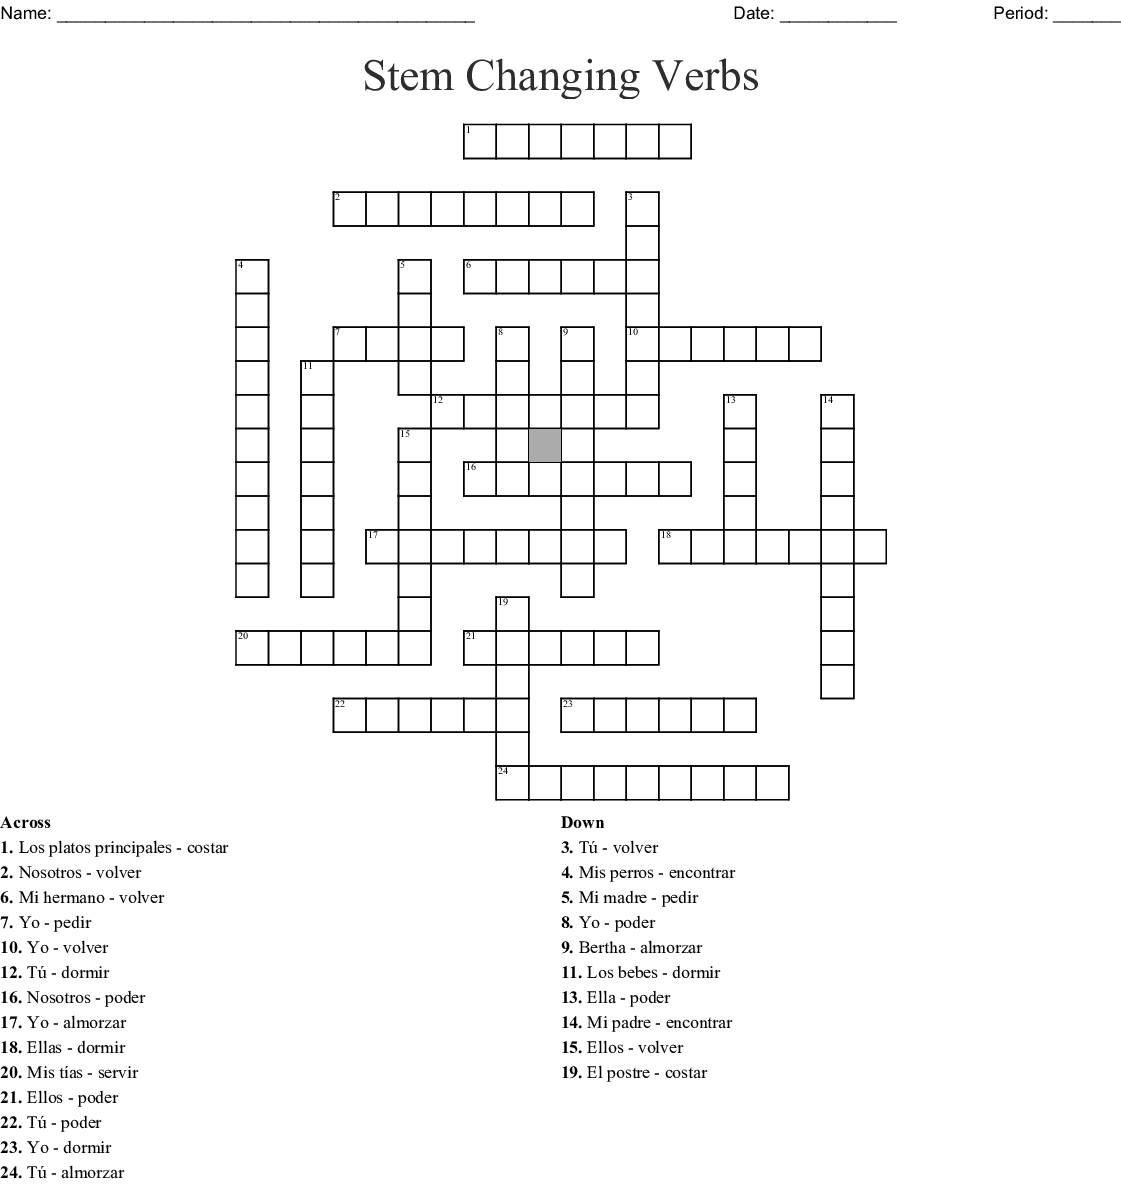 Stem Changing Verbs Word Search